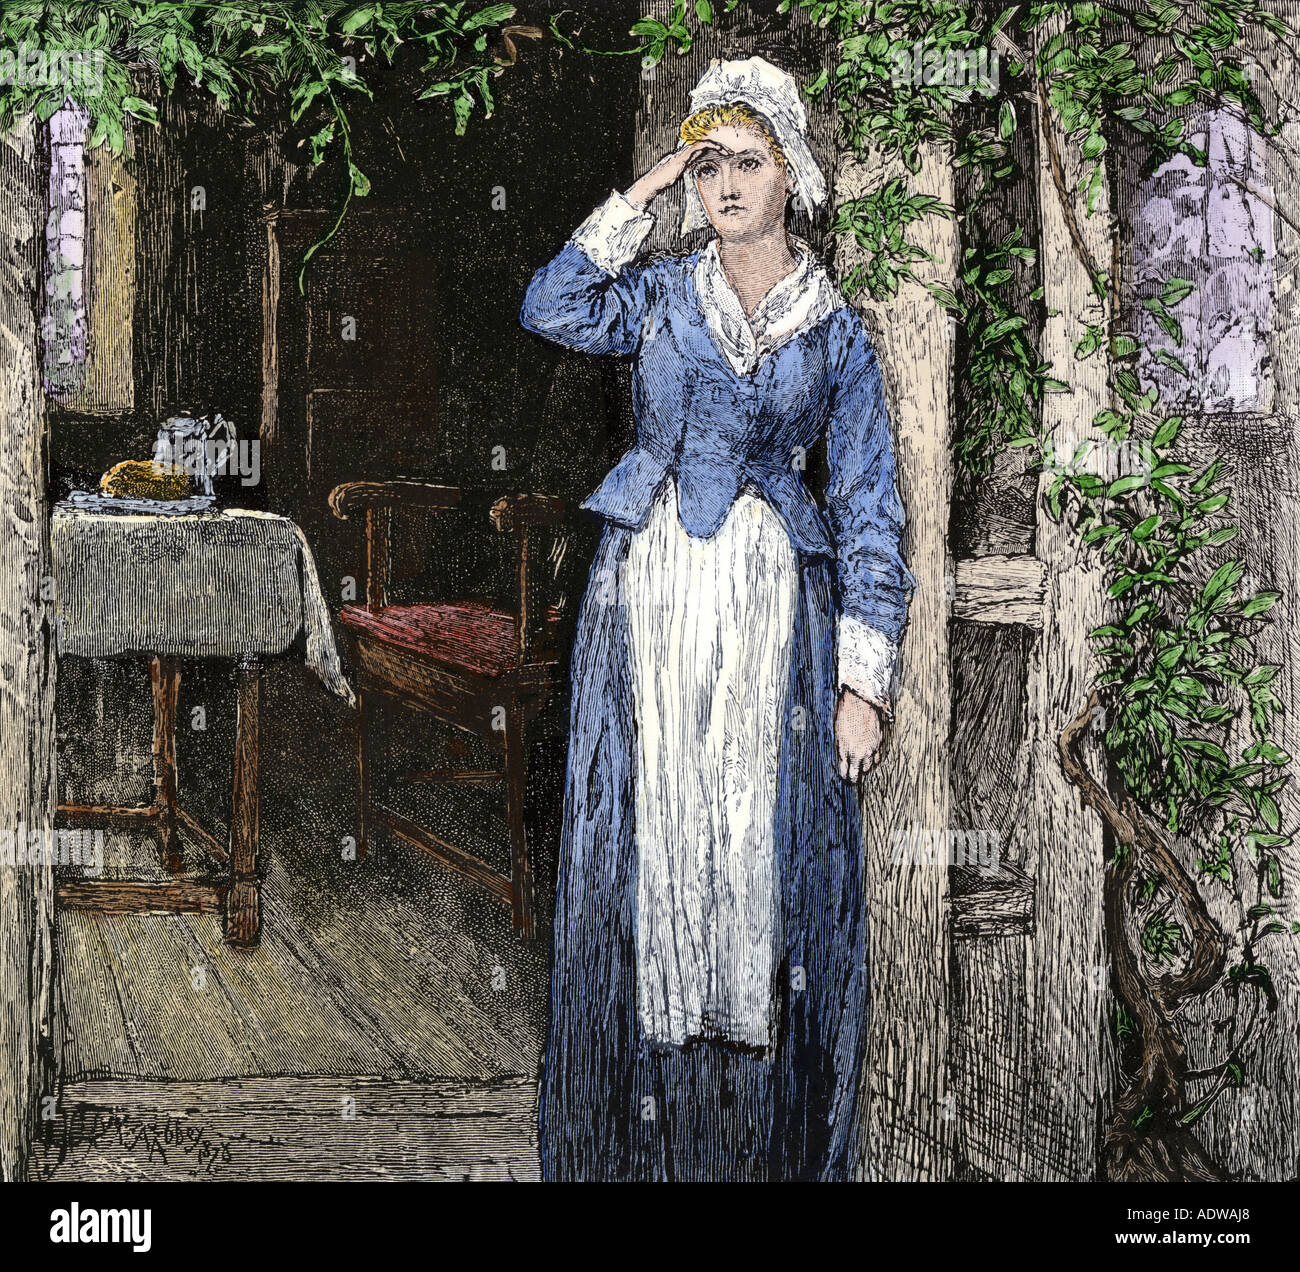 Evangeline an illustration from the poem by Henry Wadsworth Longfellow. Hand-colored woodcut - Stock Image